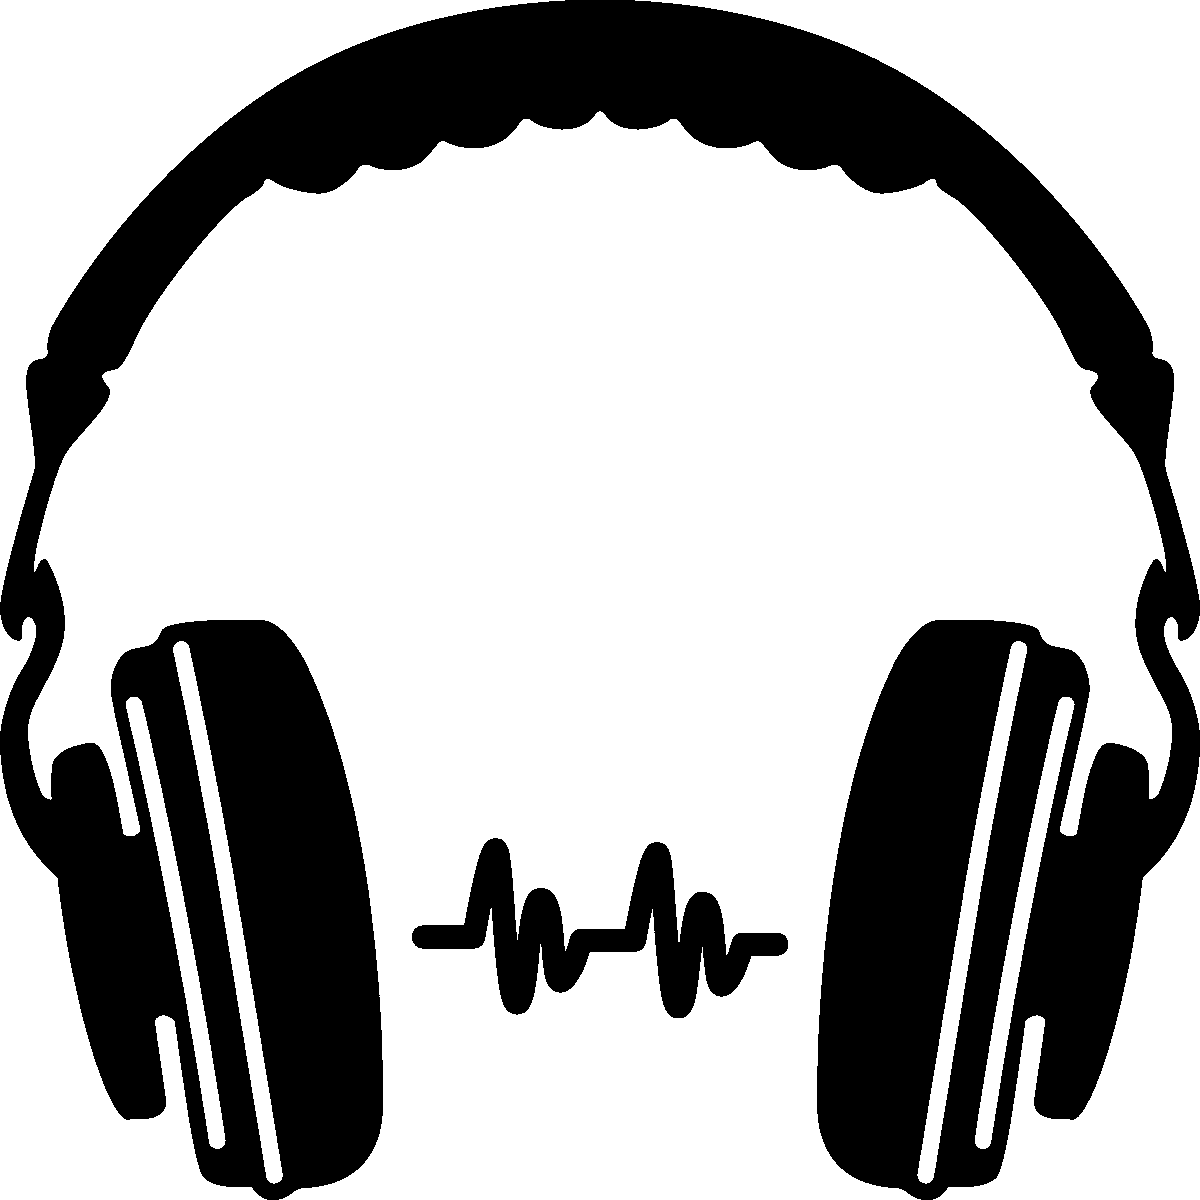 Audio clipart dj headphone #6